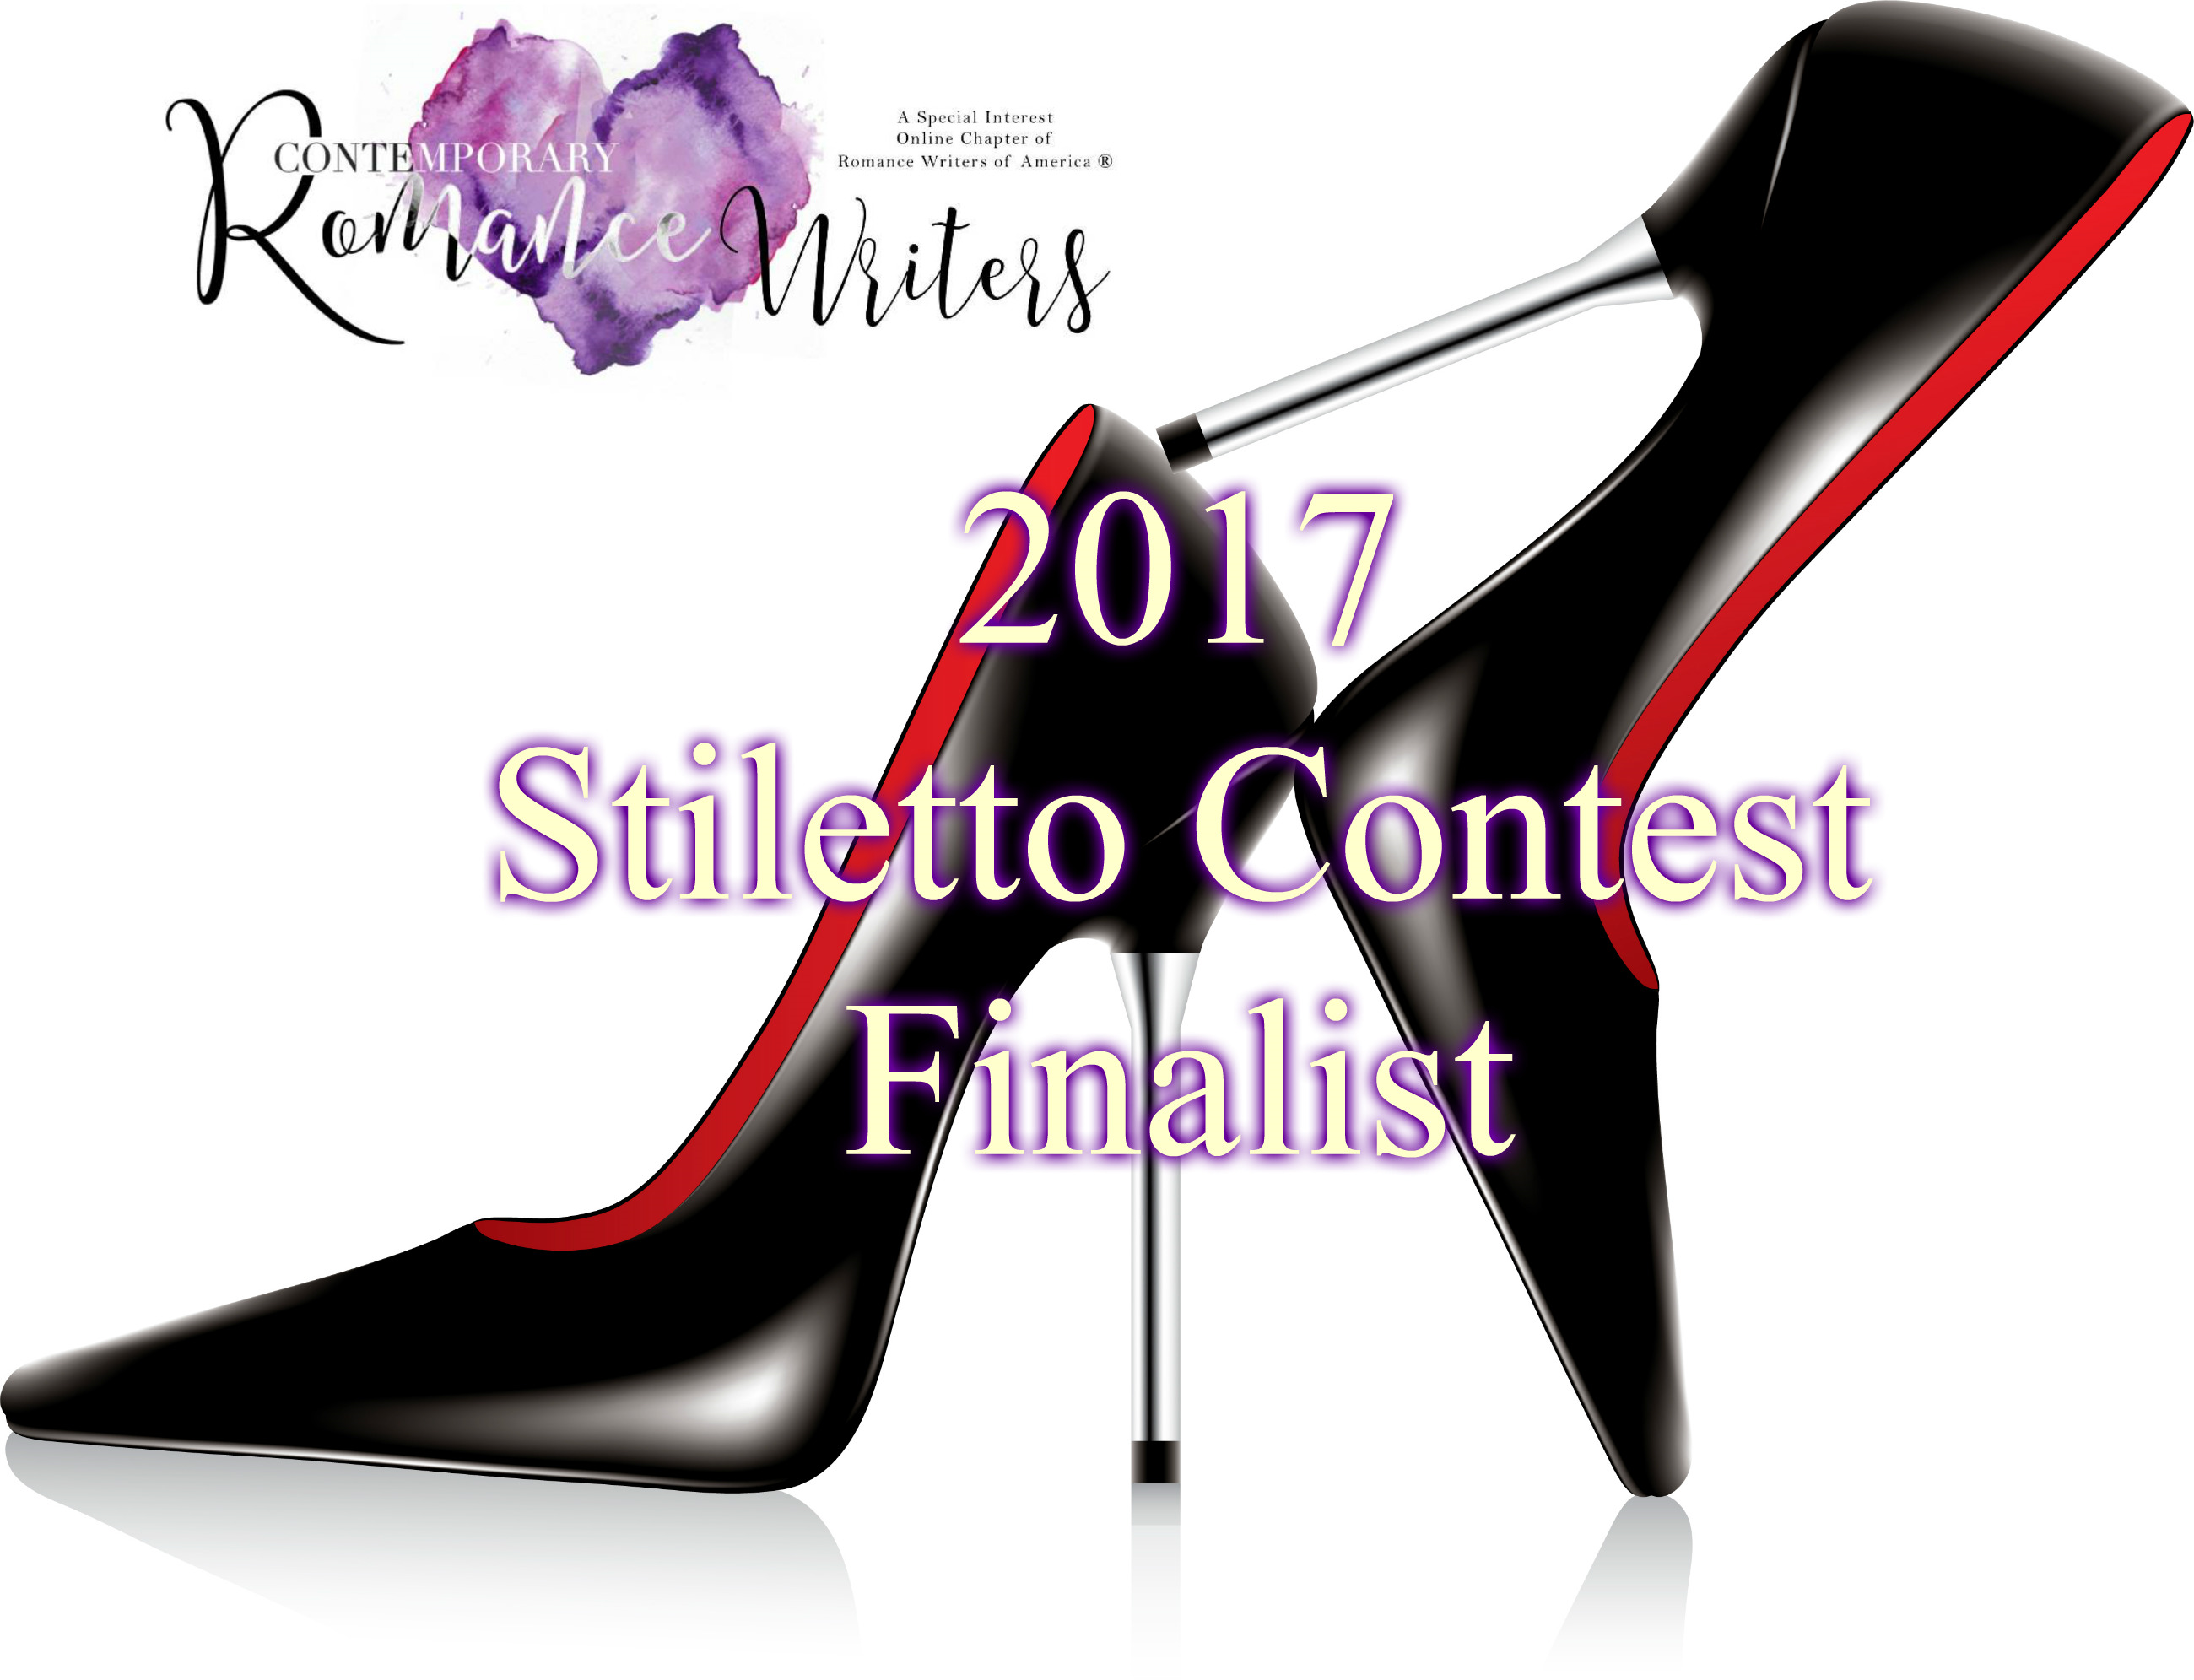 2017 Stiletto Contest Finalist